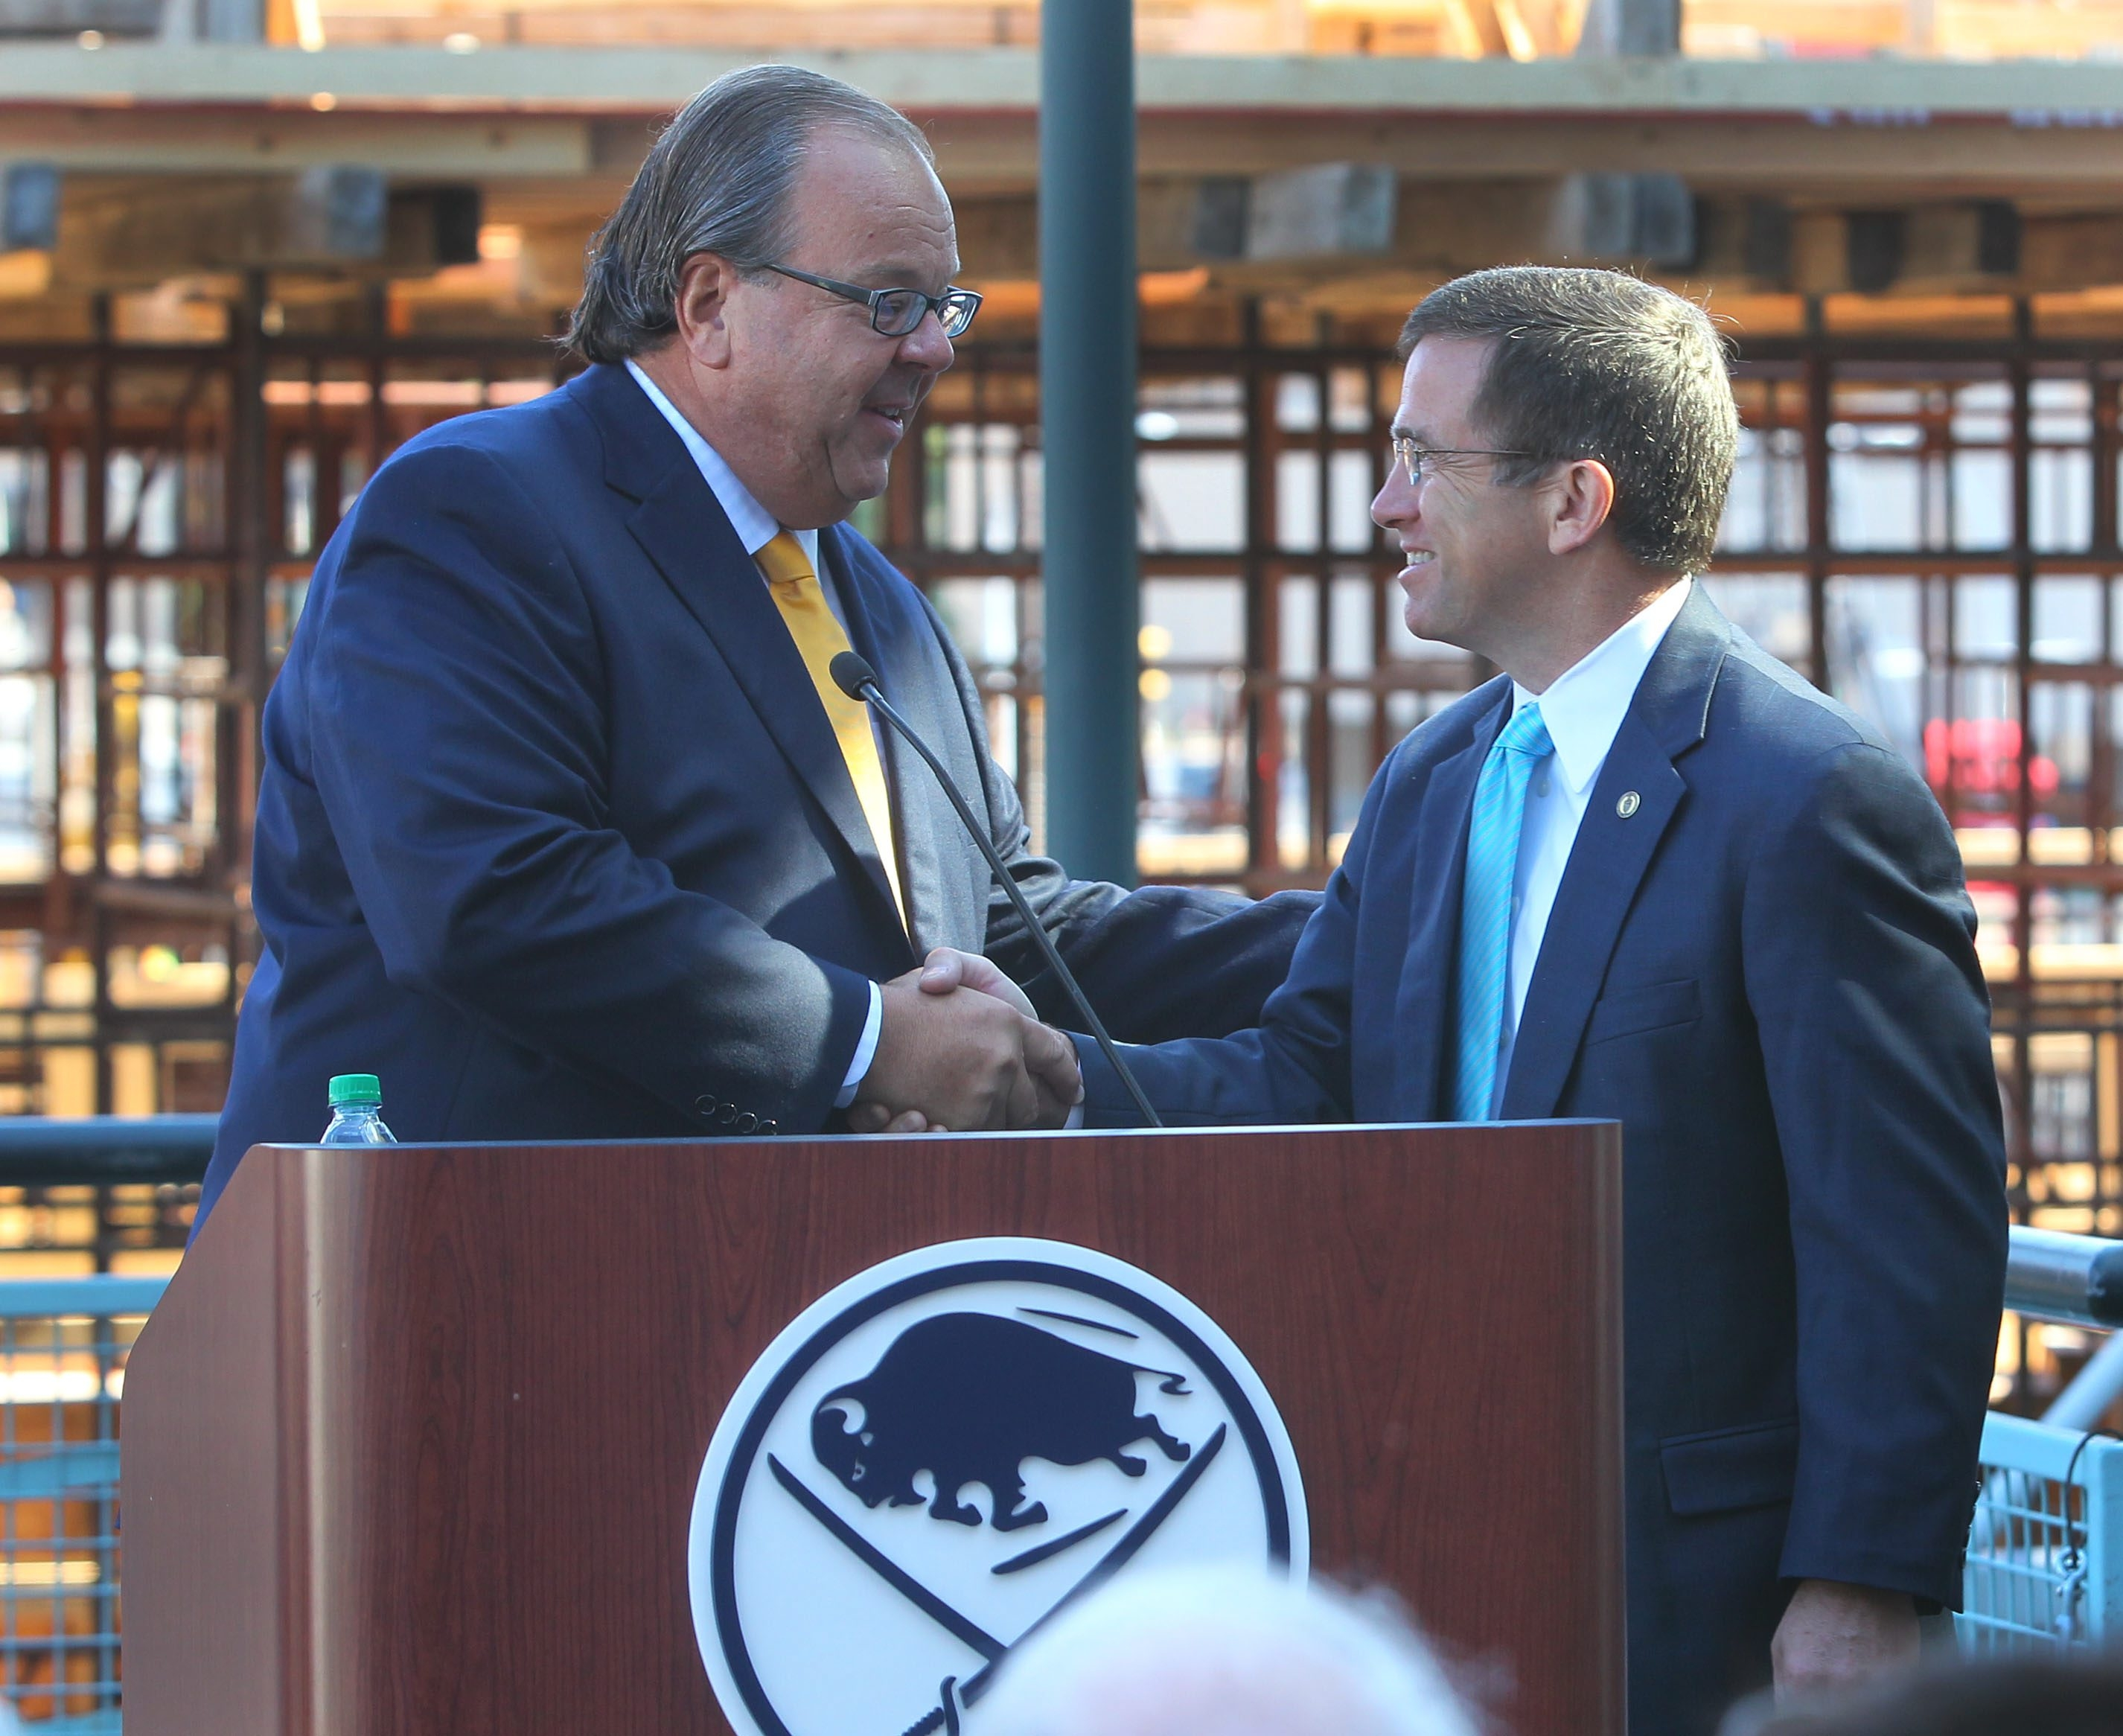 HarborCenter president John Koelmel and Canisius College president John J. Hurley greet each other during Tuesday's press conference announcing the Golden Griffins hockey team will play at the facility.